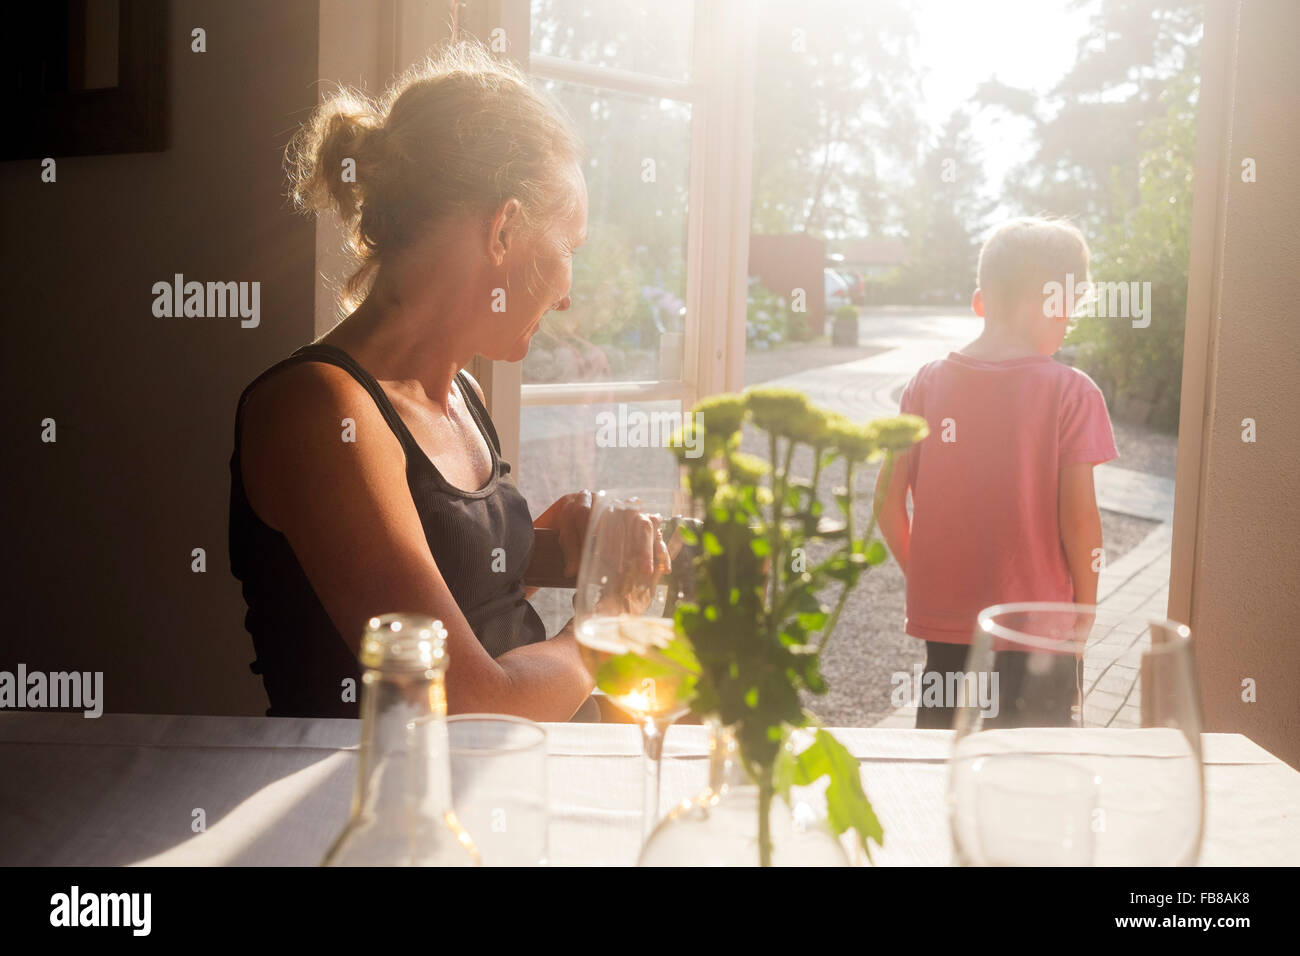 Sweden, Skane, Kullaberg, Mother looking at son (6-7) standing in doorway to backyard at restaurant - Stock Image